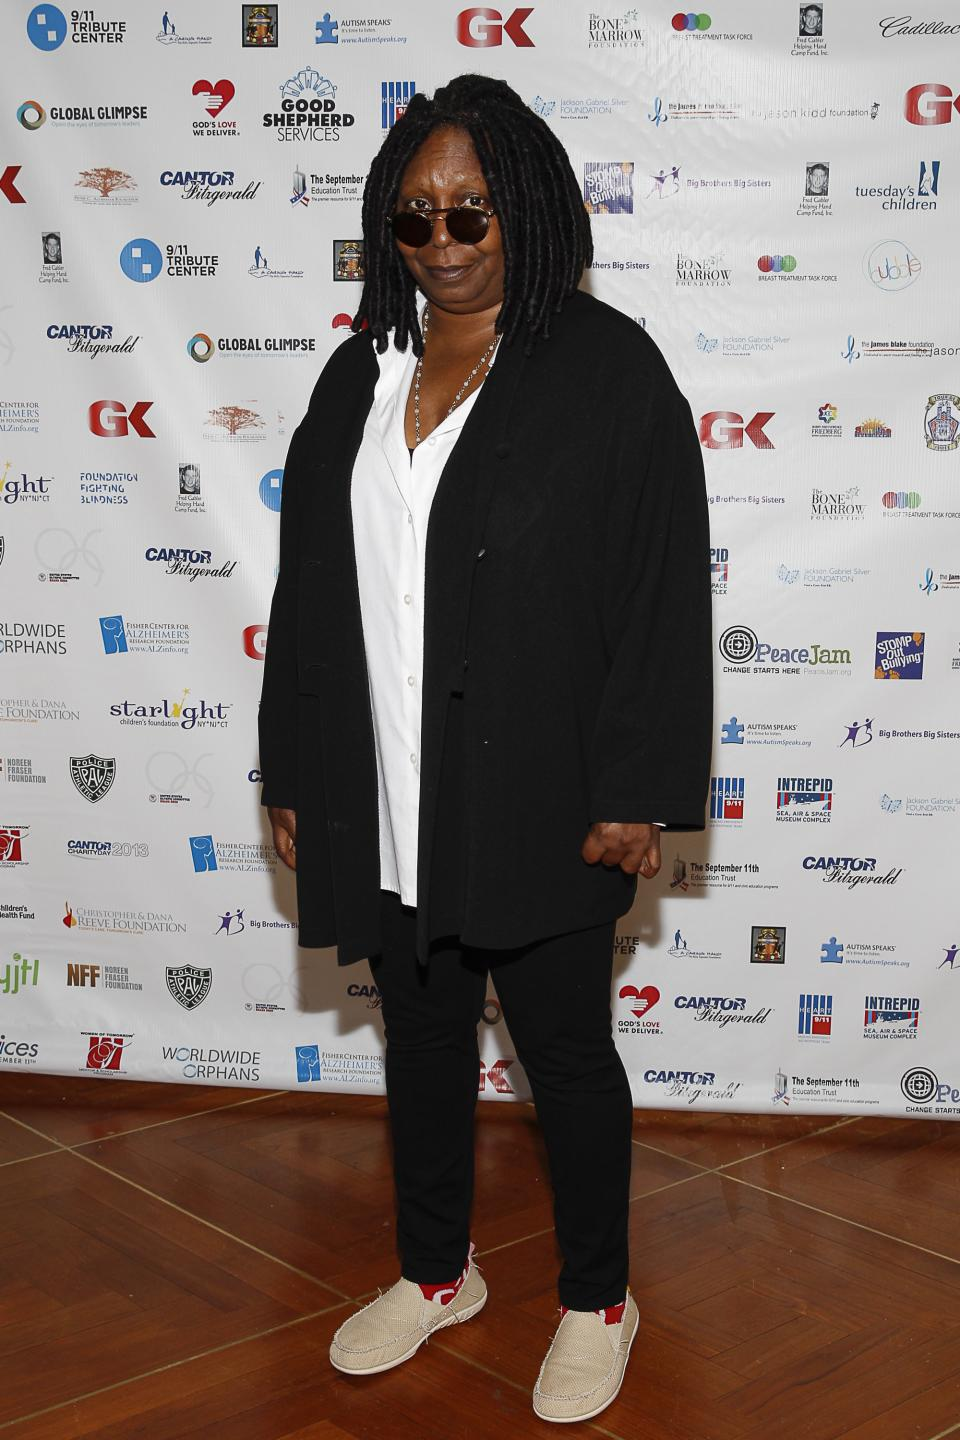 Whoopi Goldberg arrives at the Annual Charity Day hosted by Cantor Fitzgerald and BGC Partners, on Wednesday, Sept. 11, 2013, in New York. (Photo by Mark Von Holden/Invision/AP)